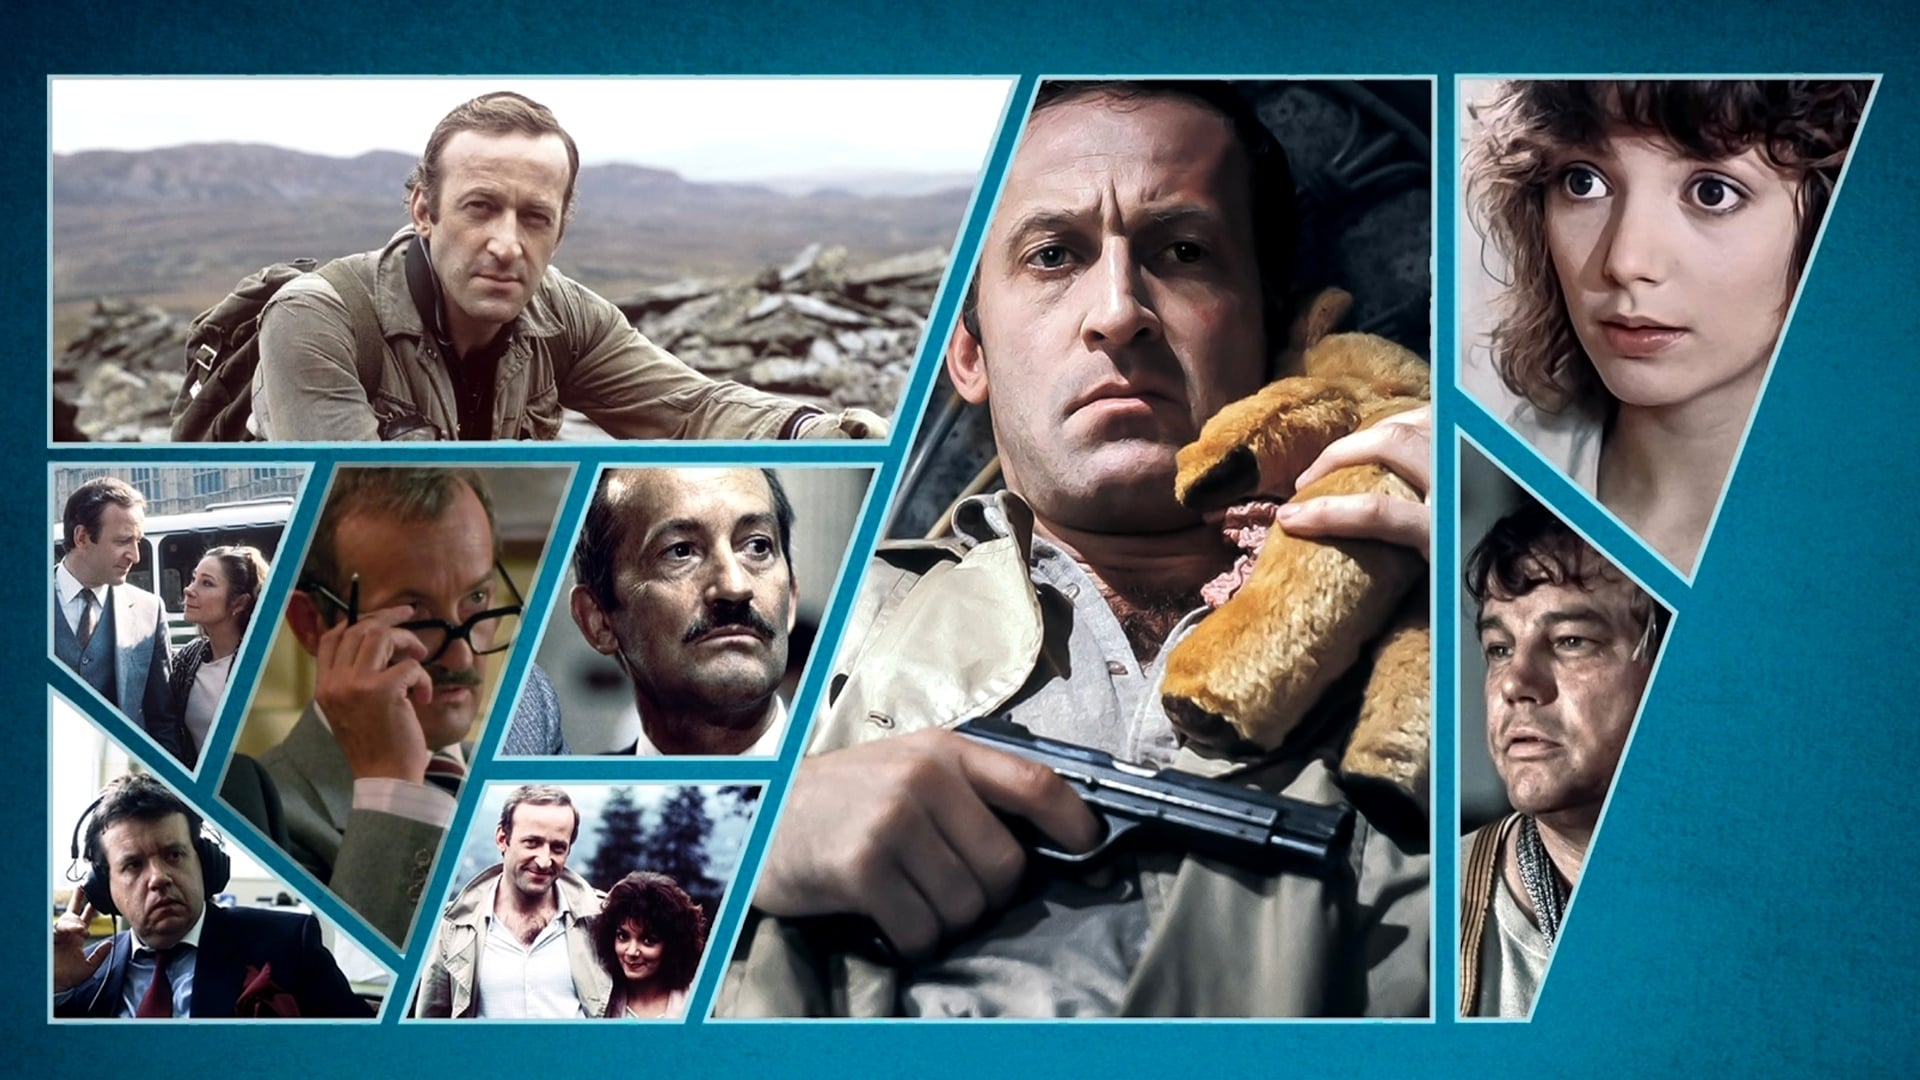 Nu op dvd: de orginele tv-serie Edge Of Darkness